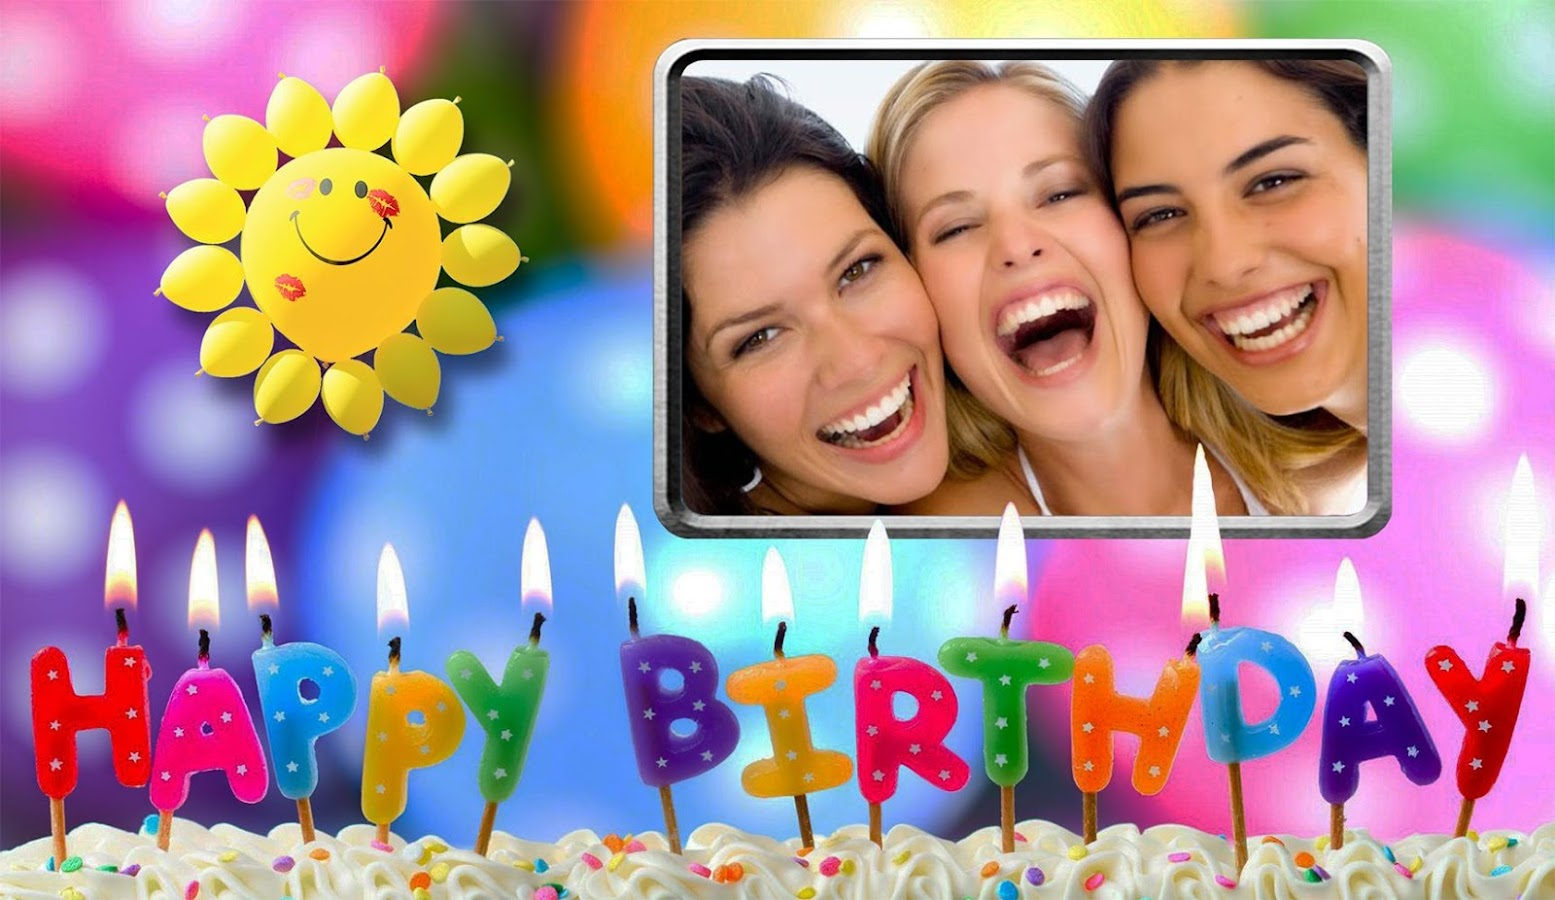 Happy Birthday Photo Frames 1.3 APK Download - Android Entertainment ...